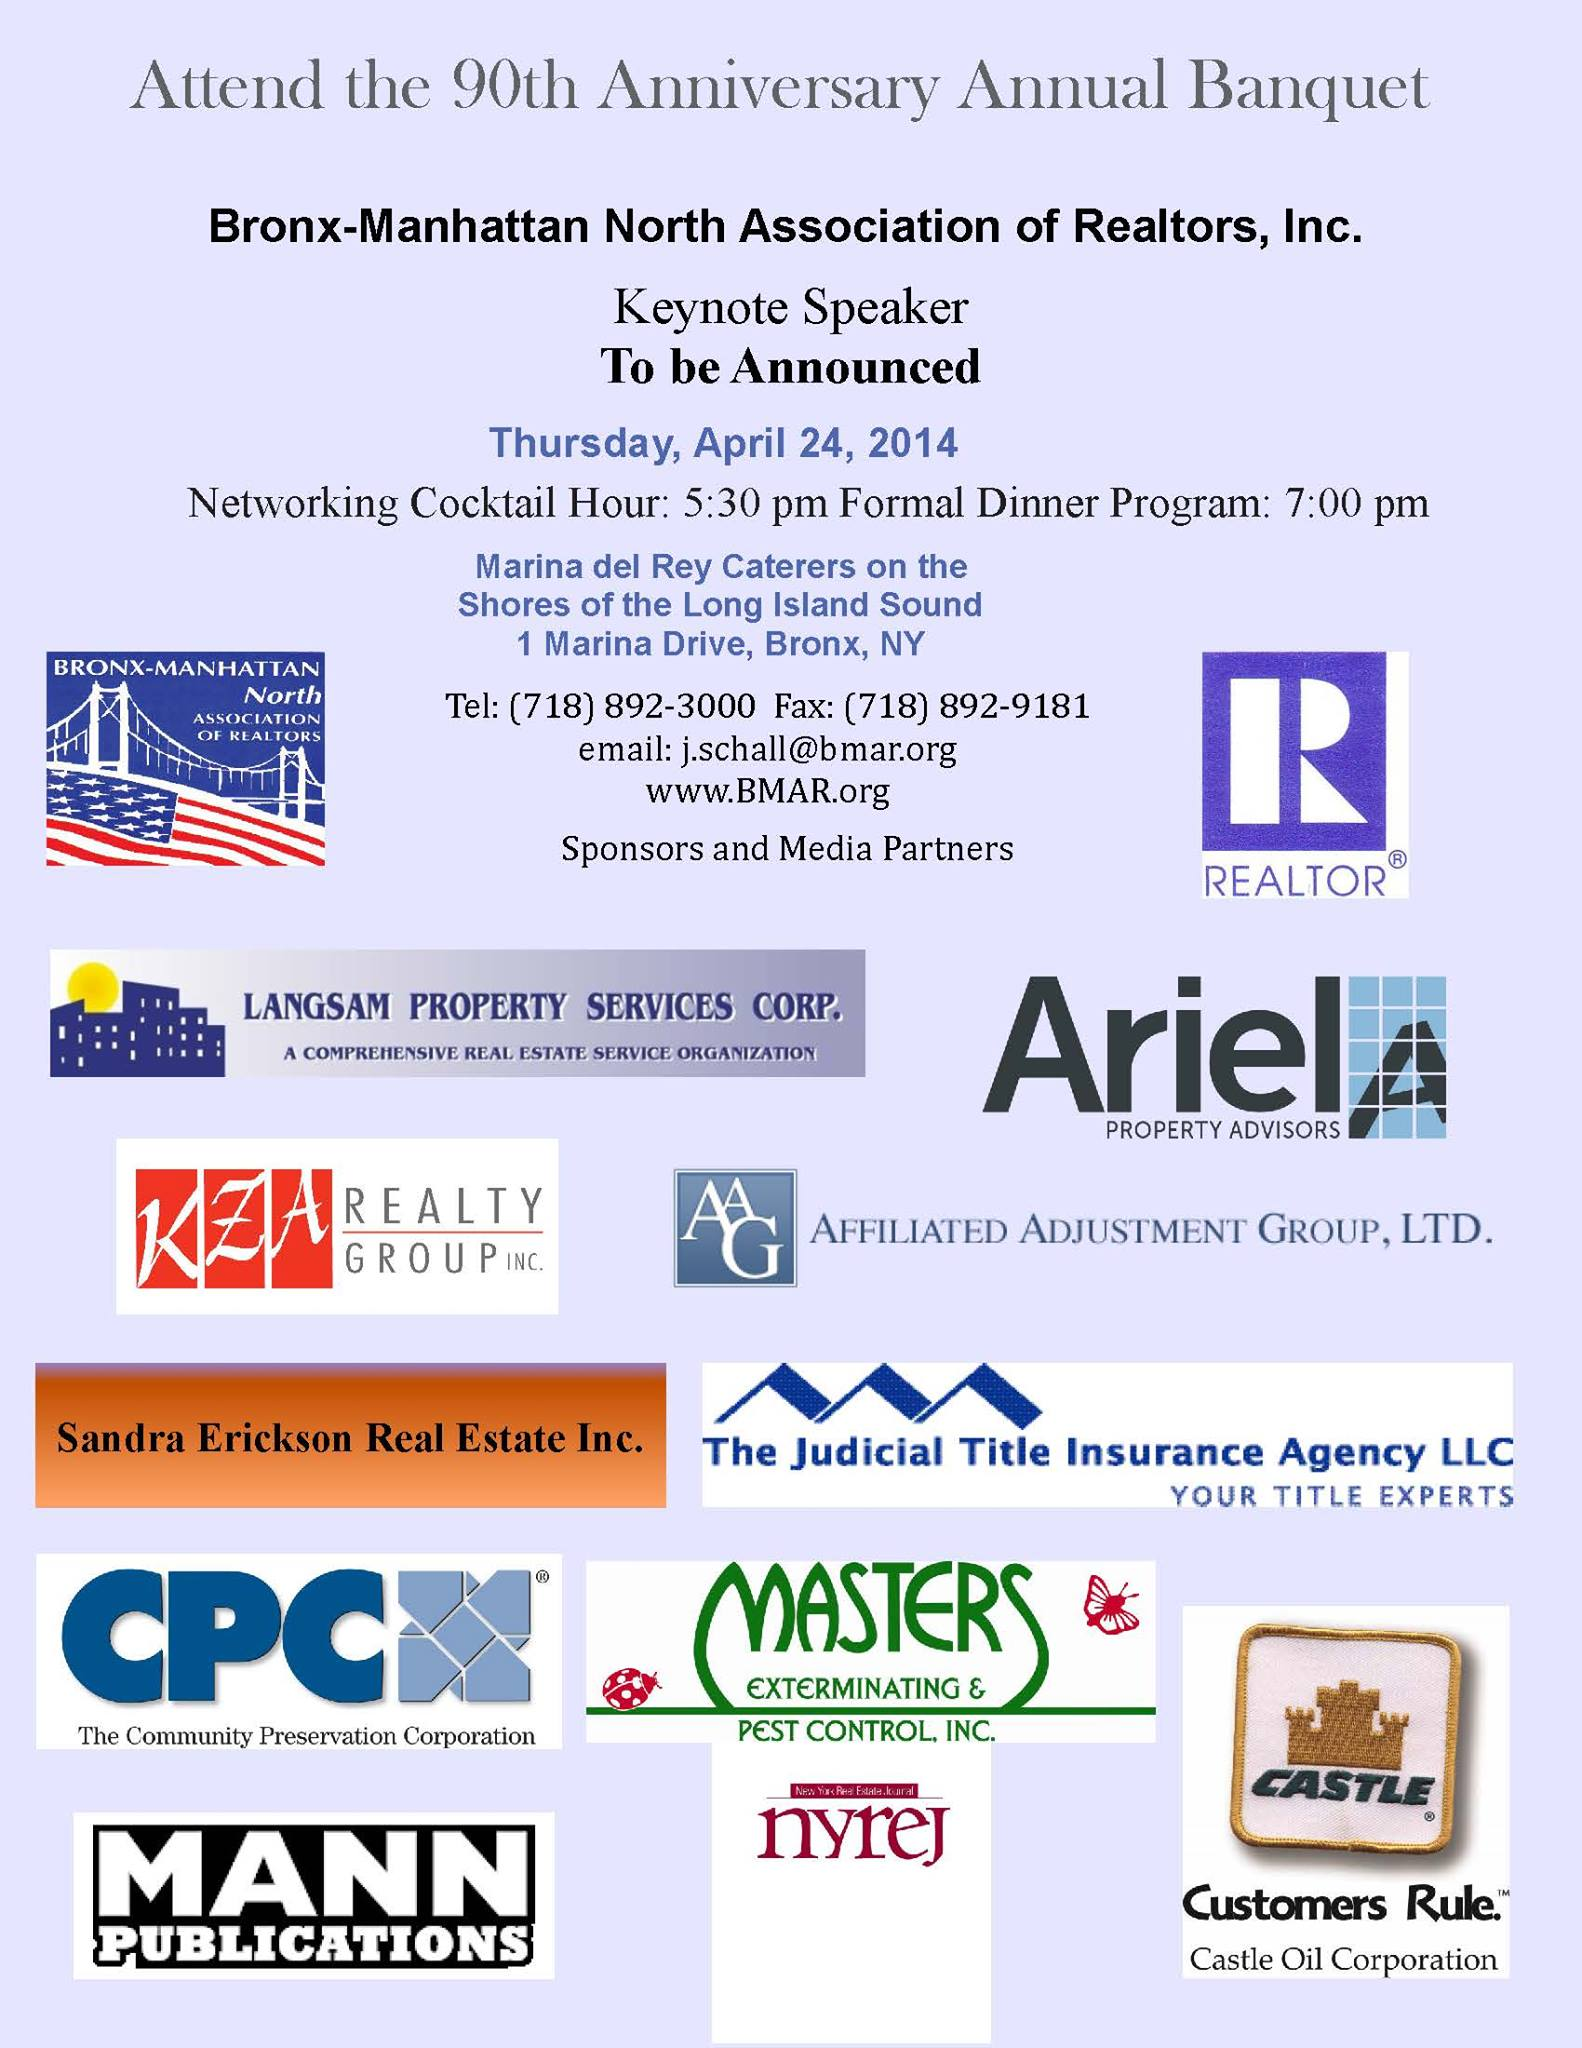 90th Annual Bronx-Manhattan North Association of Realtors Banquet Info